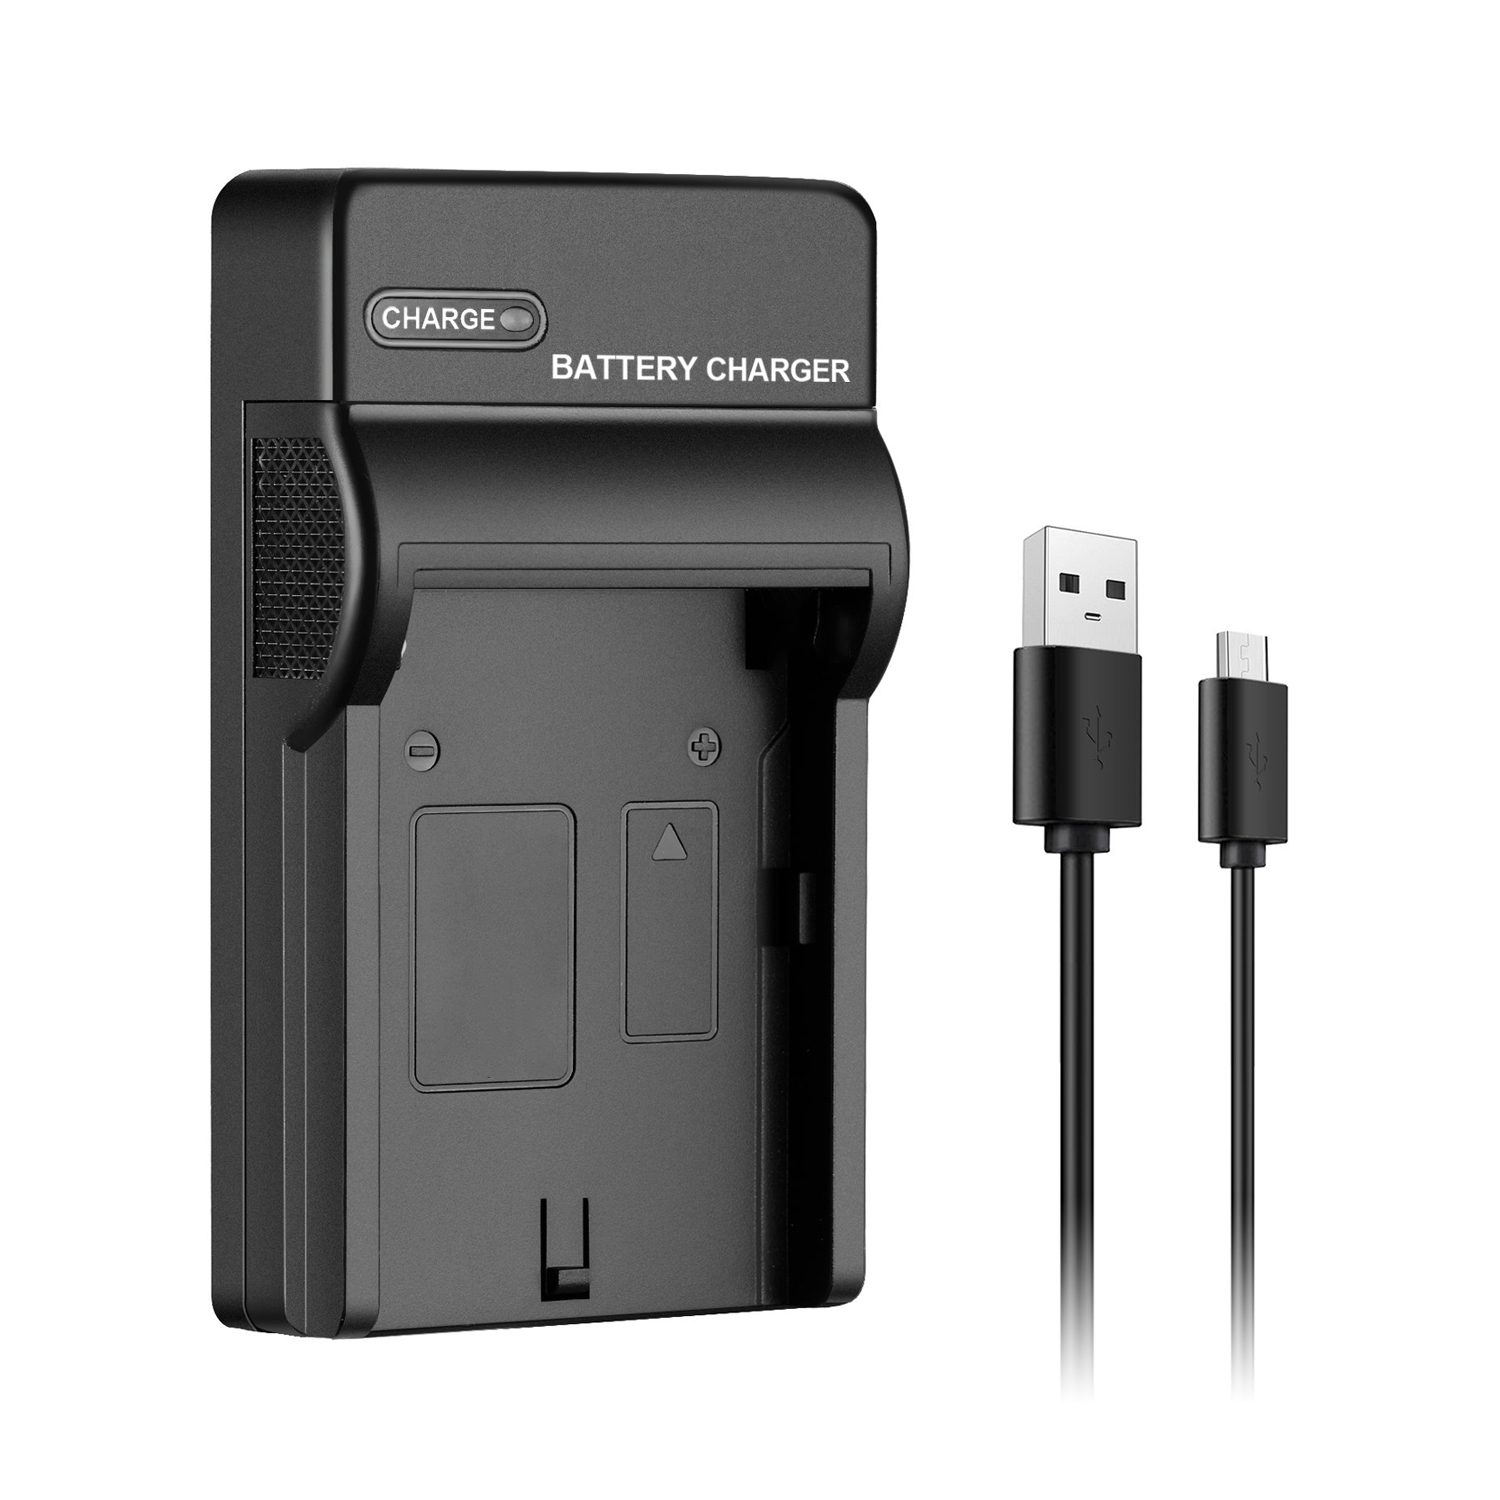 SANGER NP-FV100 USB Charger for <font><b>Sony</b></font> a230 <font><b>a290</b></font> a330 a380 a390 Camera <font><b>Battery</b></font> NP-FH50 NP-FH100 NP-FP50 NP-FP90 NP-FV50 charger image